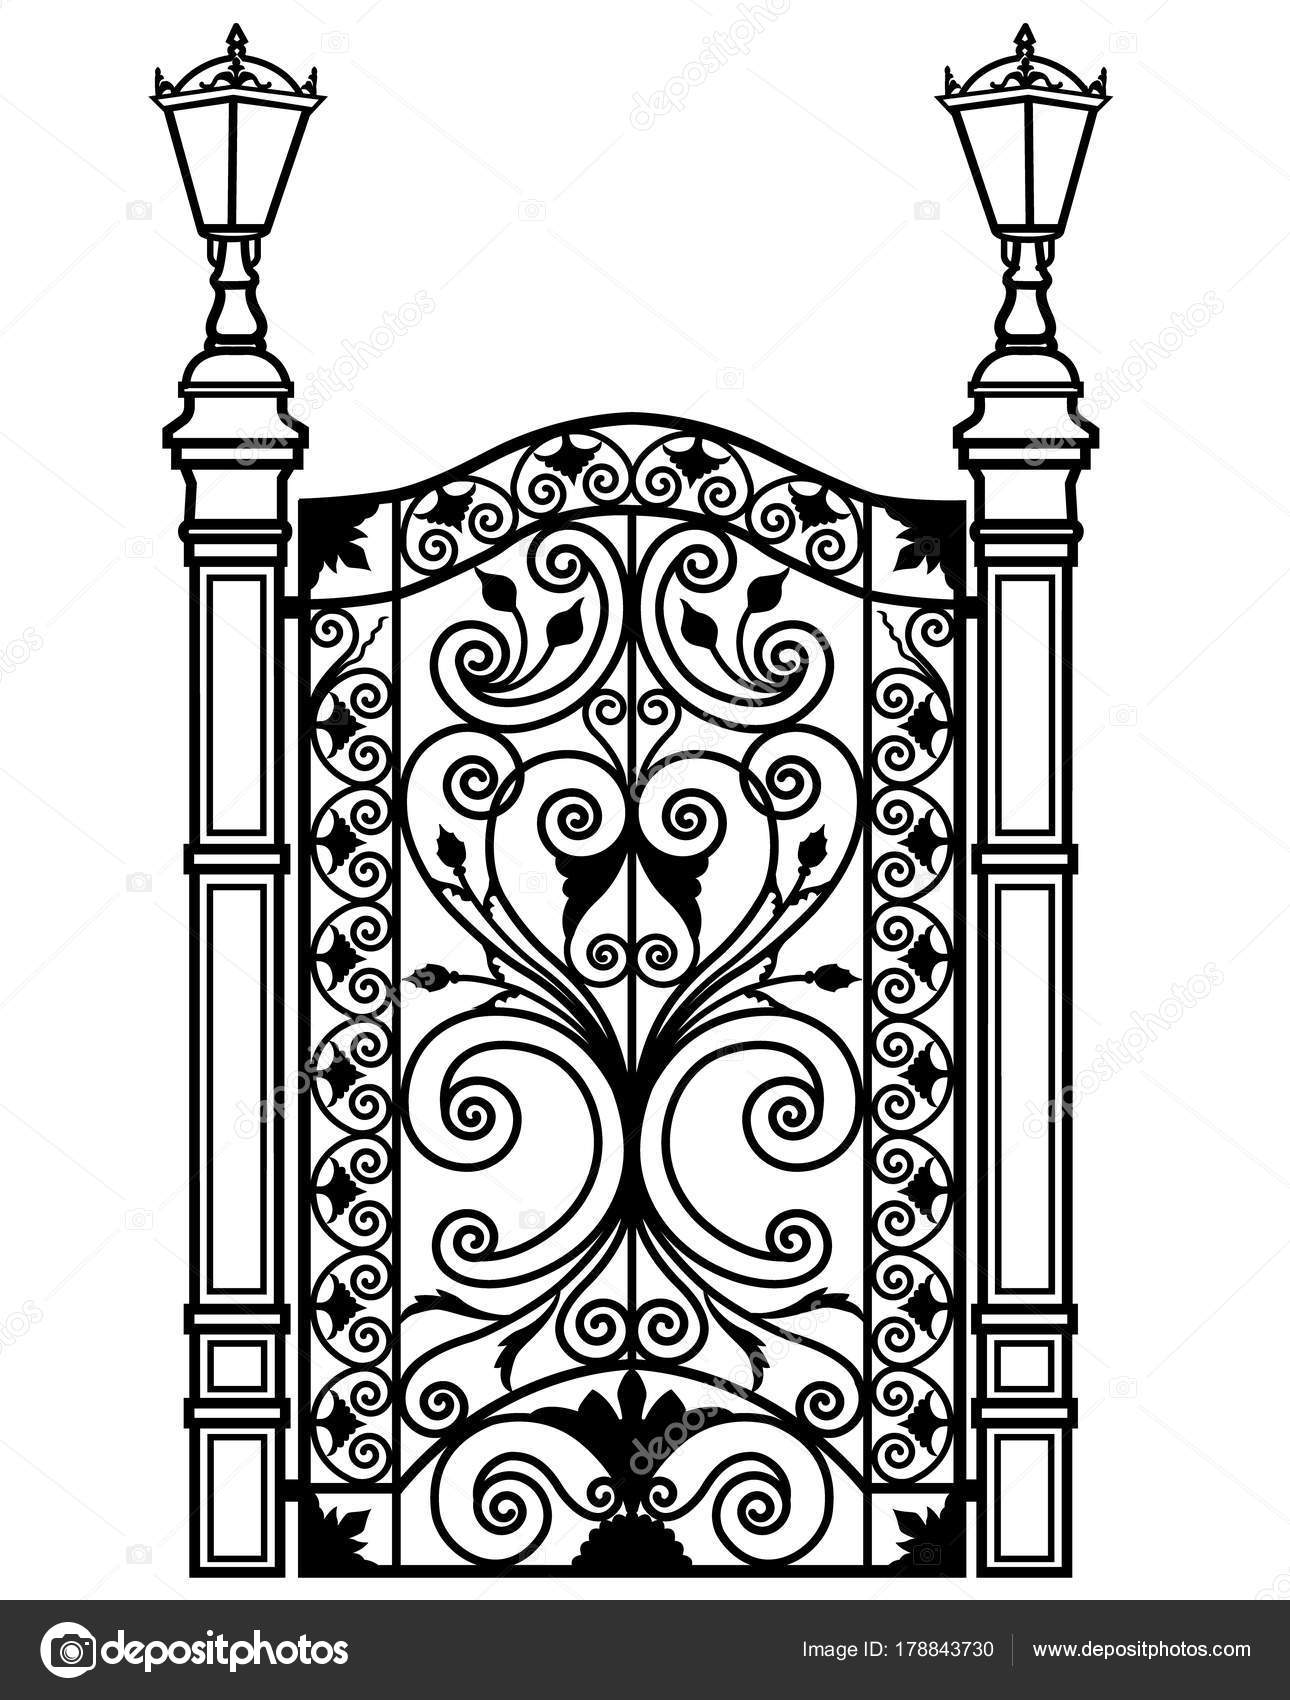 Black metal door with tracery ornaments and lanterns u2014 Vector by tatiana54  sc 1 st  Depositphotos & openwork metal door u2014 Stock Vector © tatiana54 #178843730